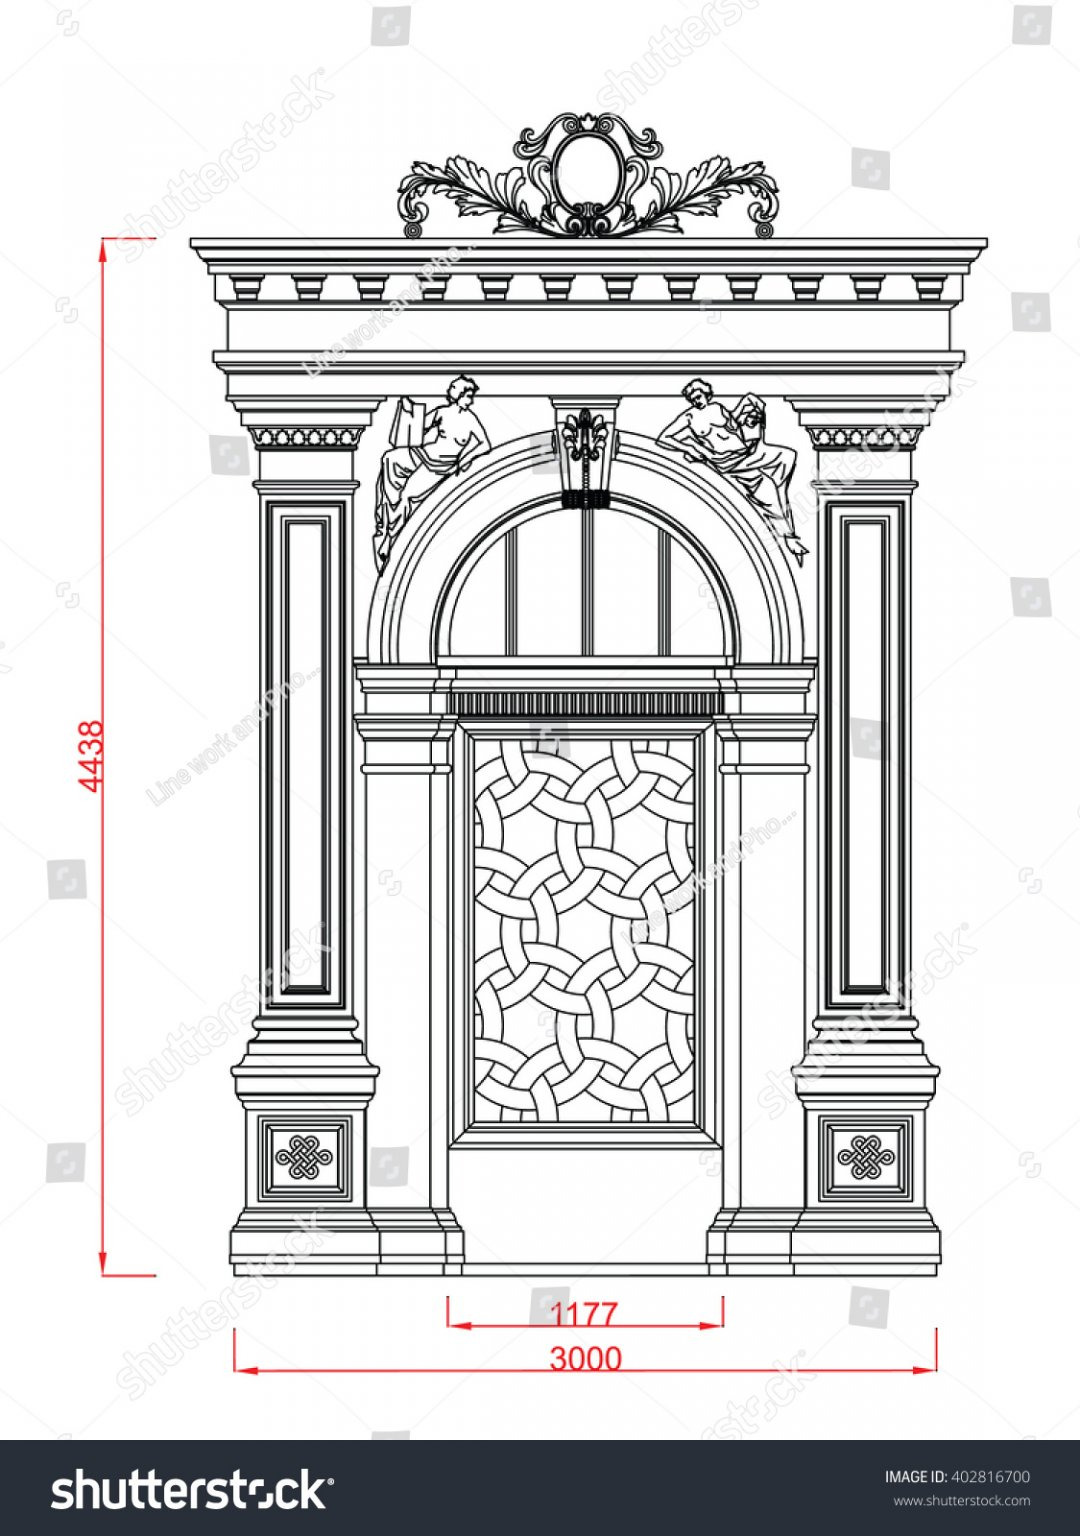 colony main gate design best for home architectural entrance stock vector and door line work black paint with dimension ideas designs pakistani front entry modern arch wedding 1080x1536